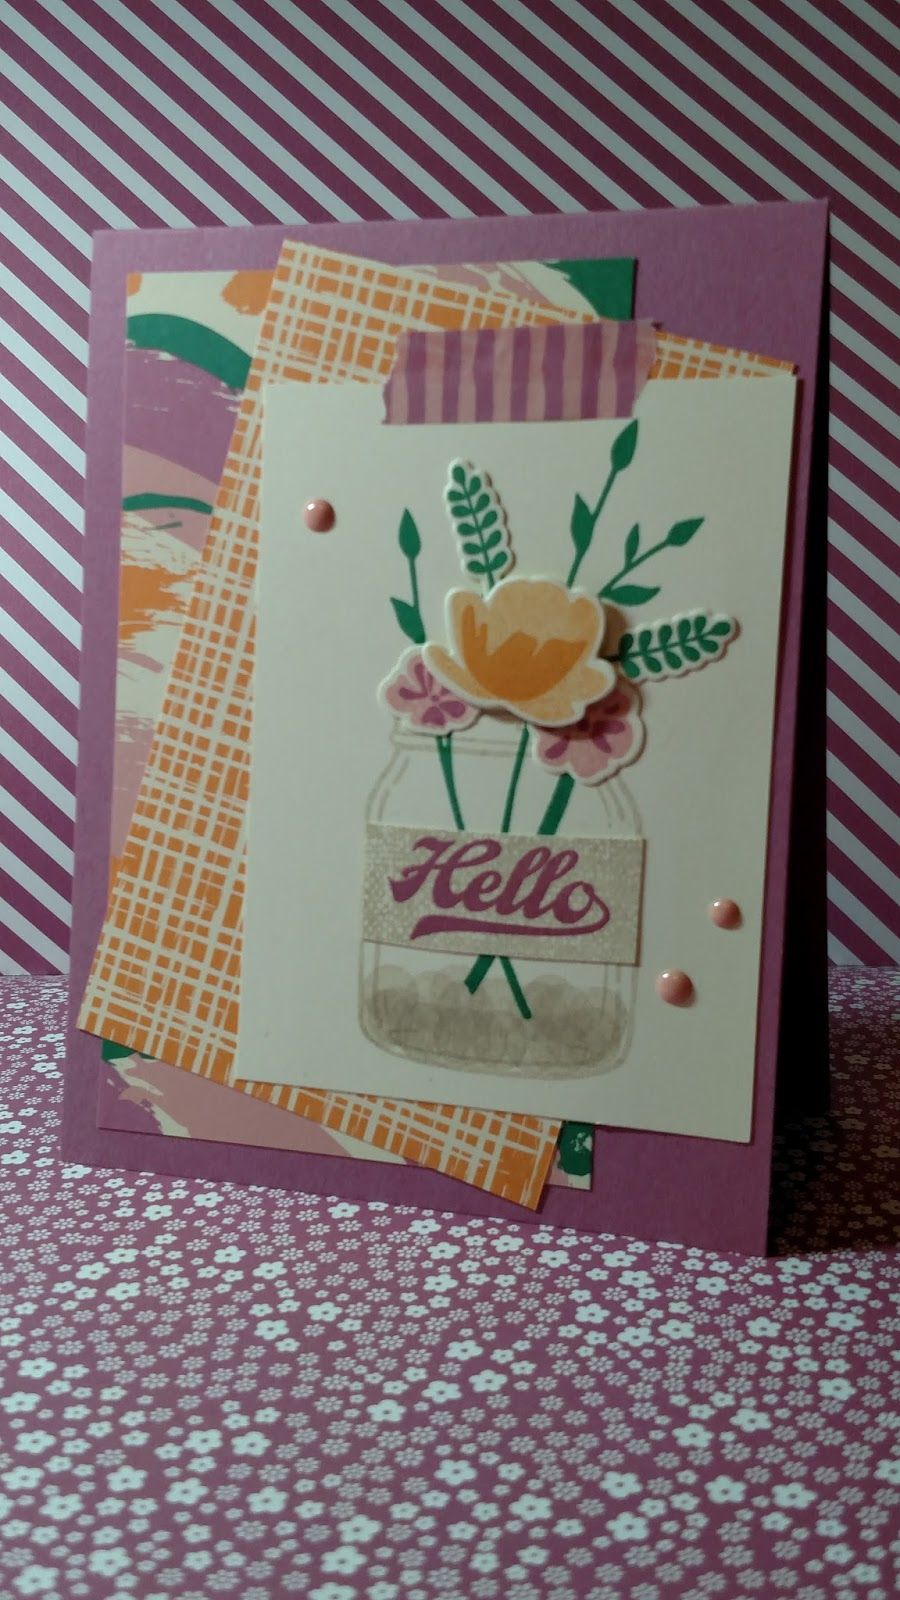 Stress-Free Stamping with Shana: The Stamp Review Crew: Jars of Love Edition